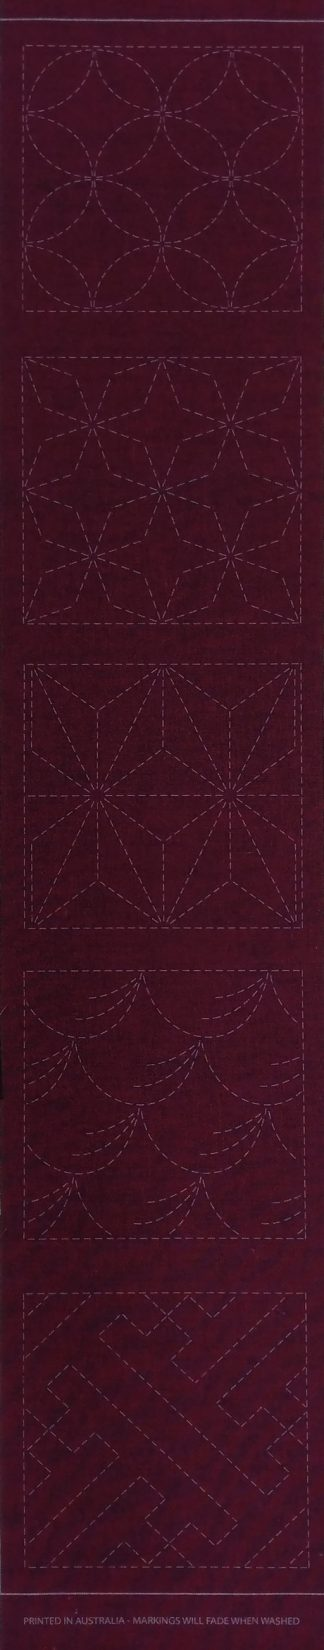 Sashiko Panel Runner No.GEO1-Cherry Red